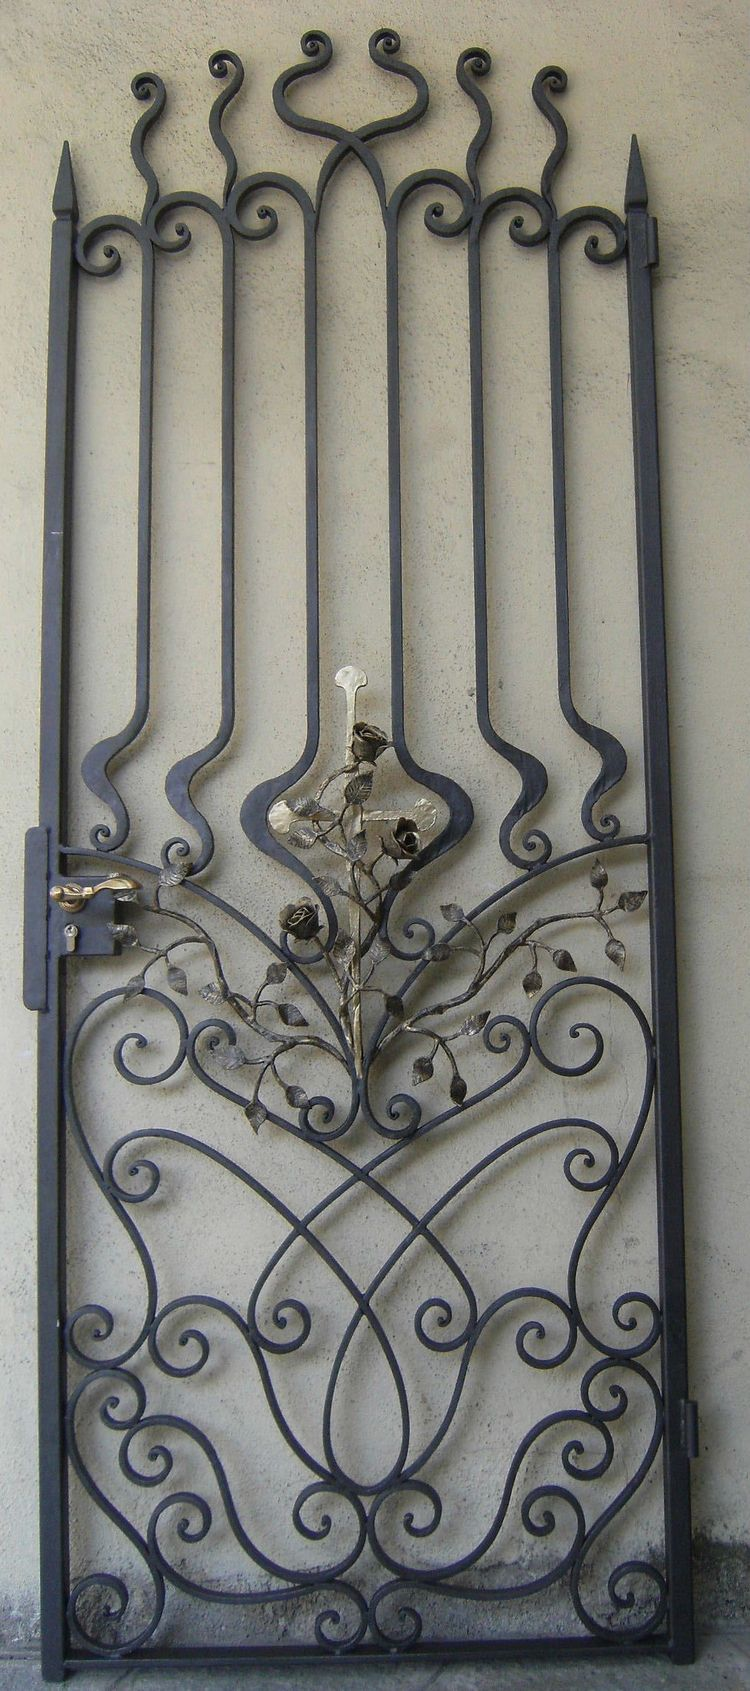 Pin antique garden gates in wrought iron an art nouveau style on - Find This Pin And More On Gates Gate And Curls Wrought Iron